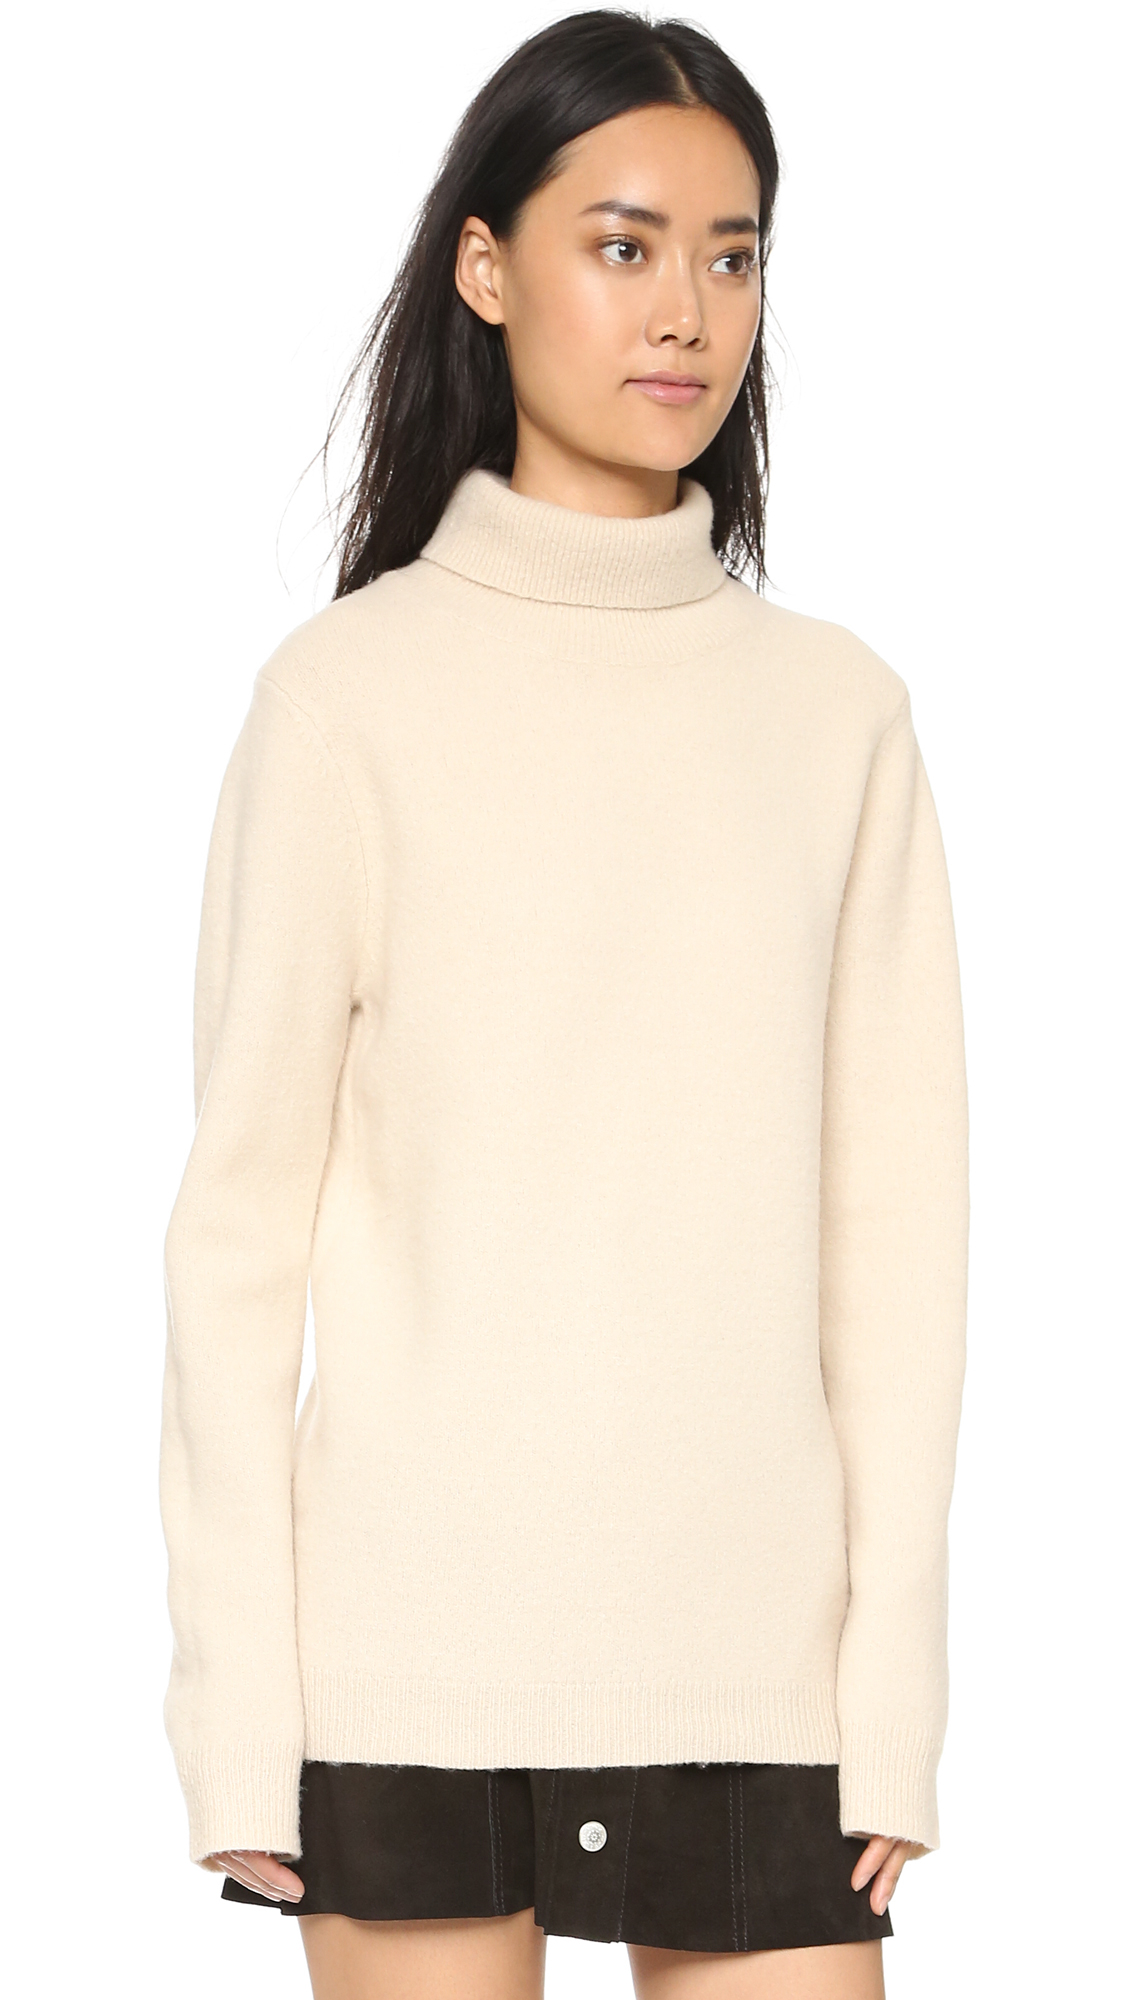 Dkny Long Sleeve Turtleneck Sweater - Buff in Natural | Lyst